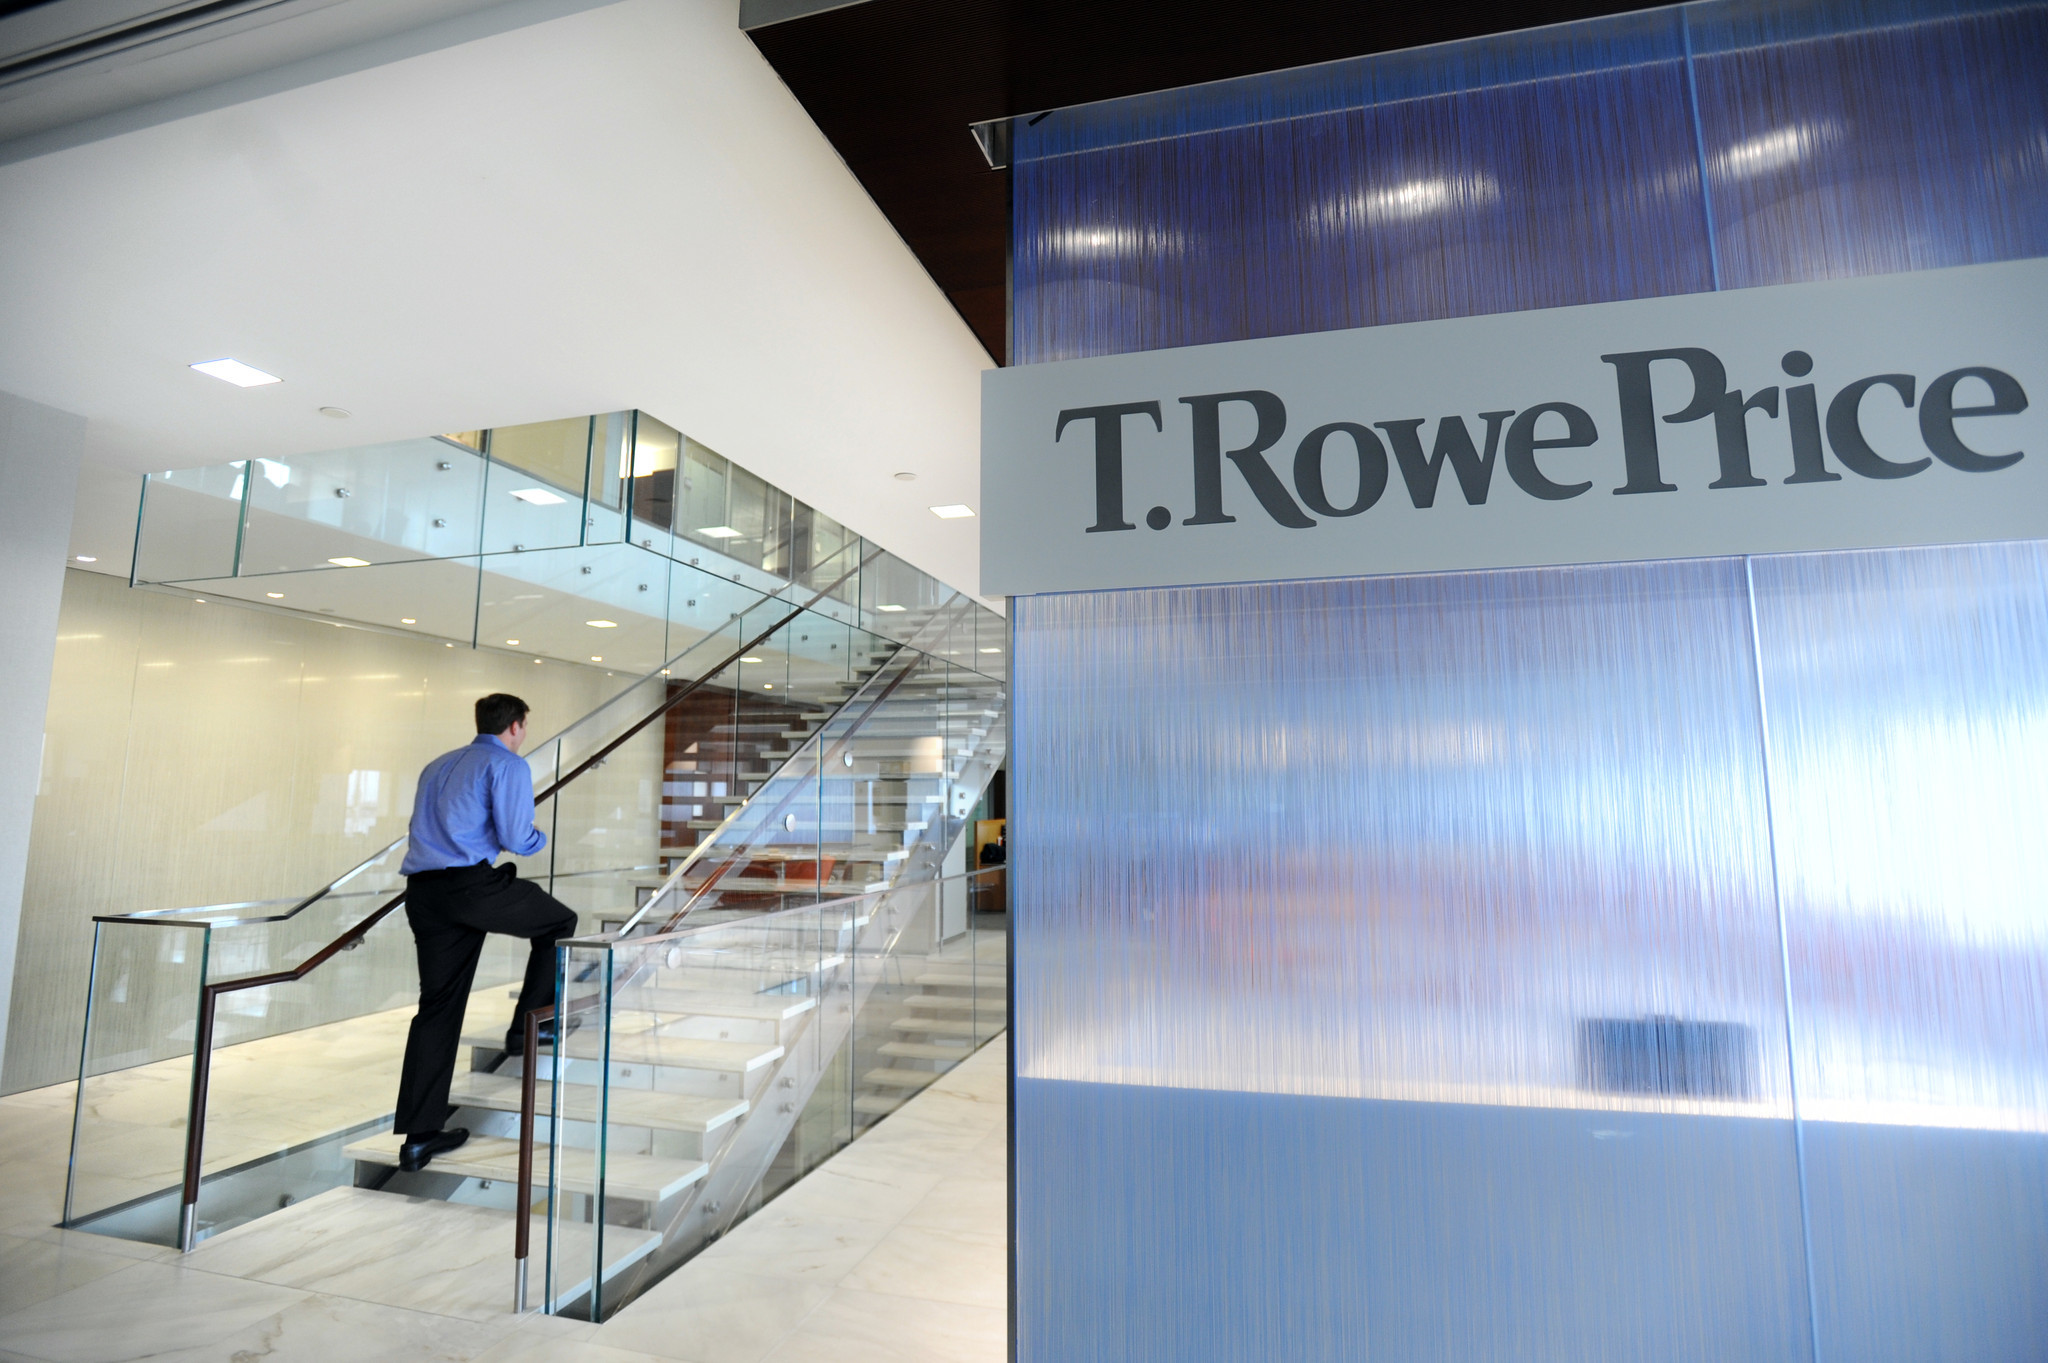 t rowe price sees an unusual turnover in portfolio managers in recent weeks chicago tribune. Black Bedroom Furniture Sets. Home Design Ideas